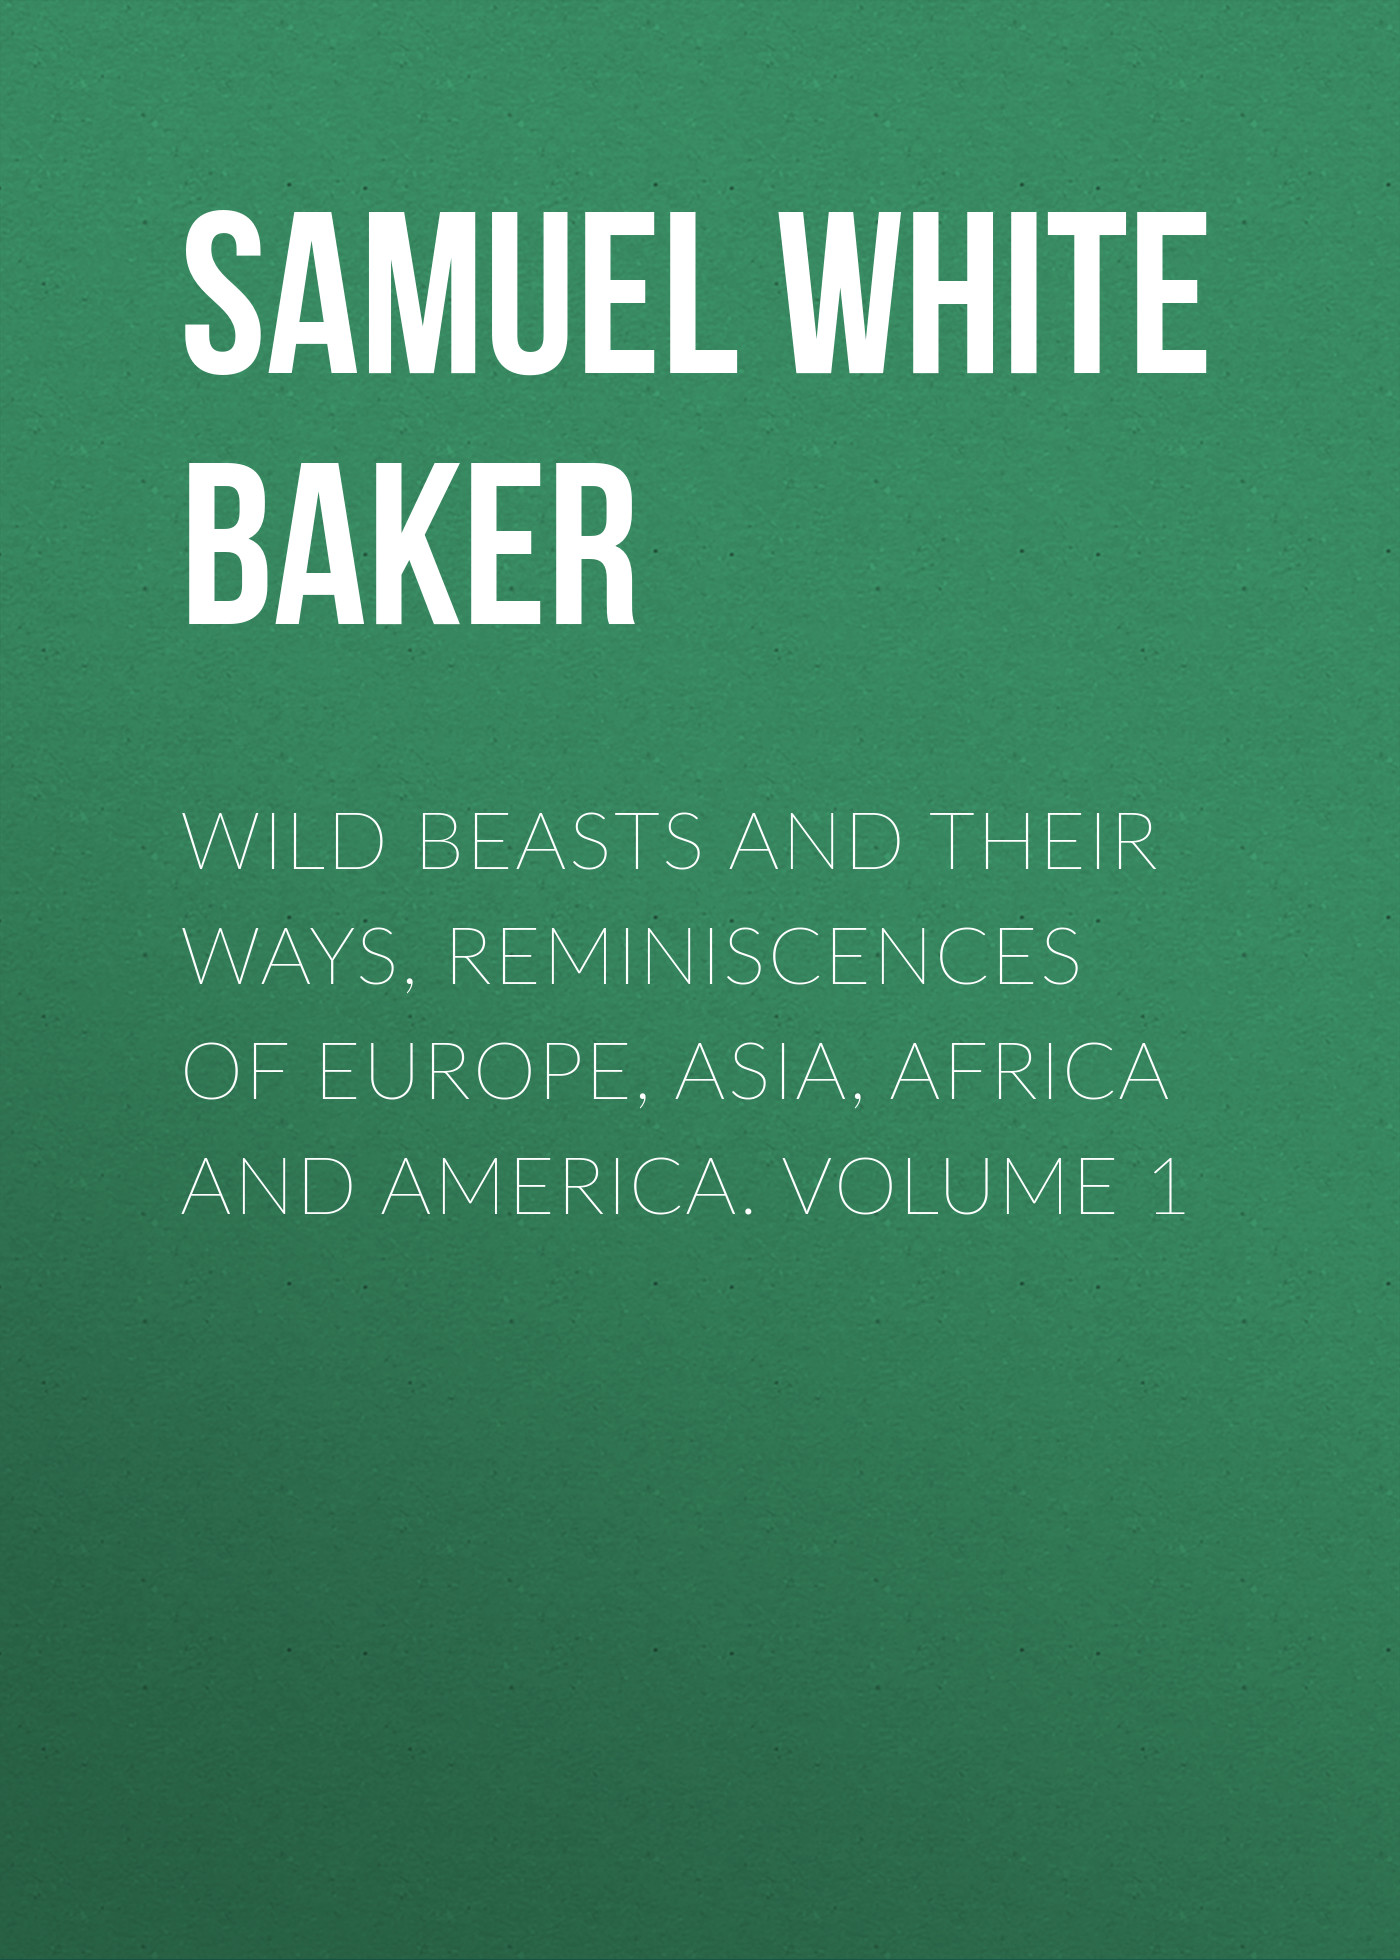 Samuel White Baker Wild Beasts and Their Ways, Reminiscences of Europe, Asia, Africa and America. Volume 1 ralph stockmann tarr general geography south america and europe